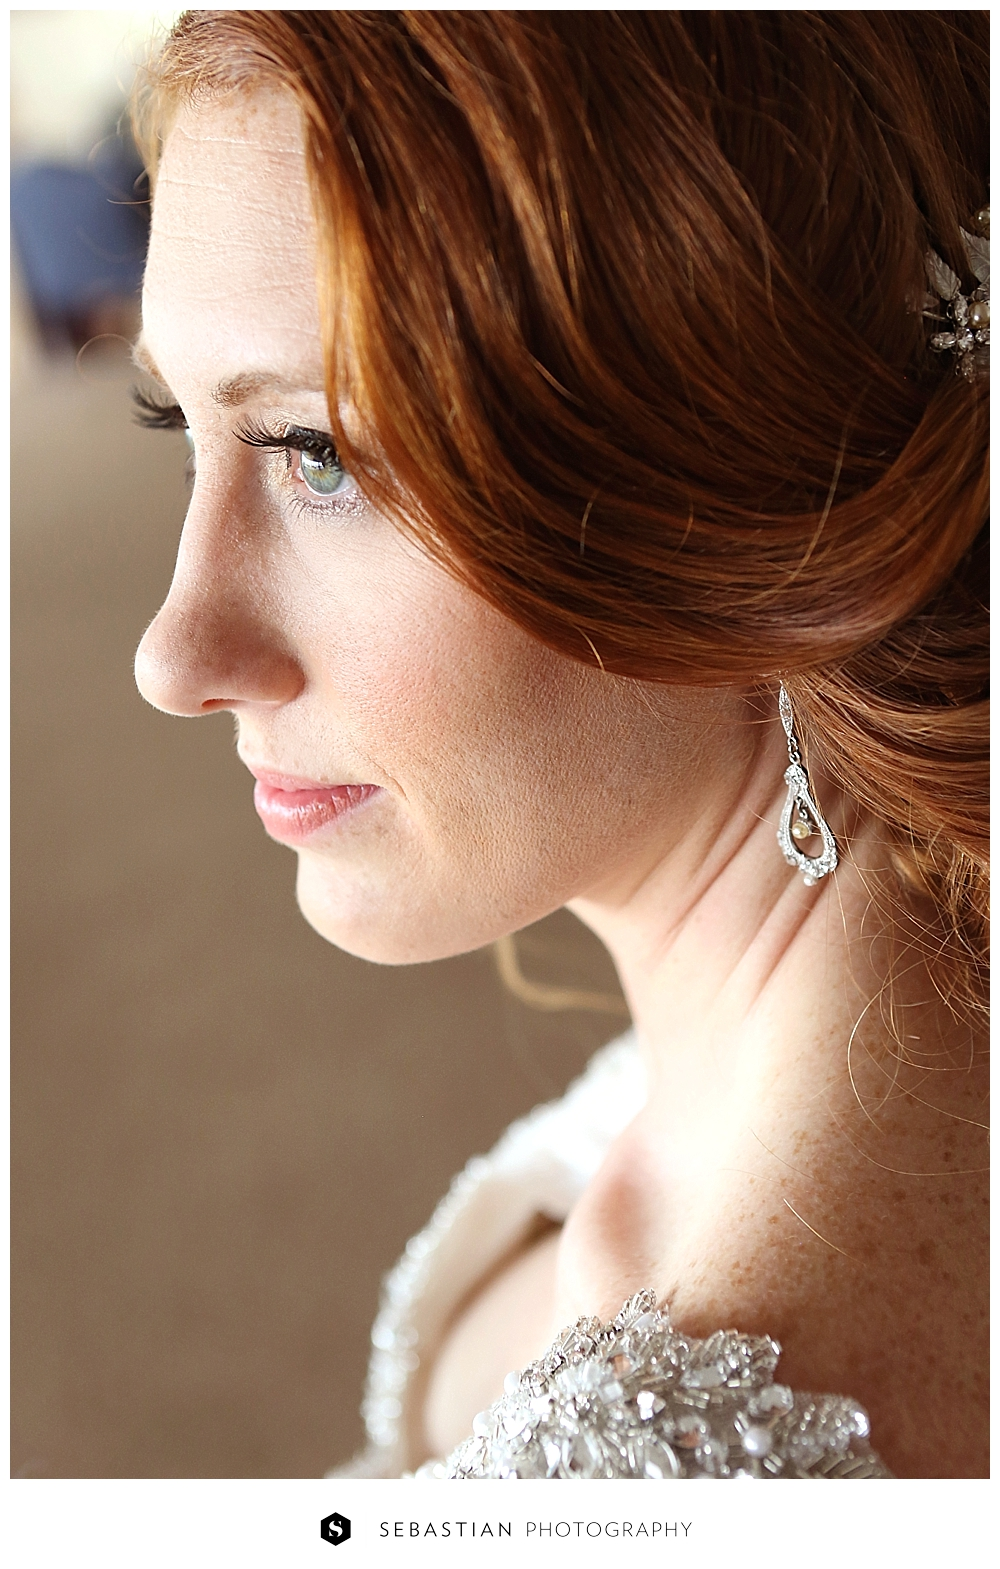 Sebastian_Photography_CT_Wedding_Photographer_New_York_US_Merchant_Marine_012.jpg